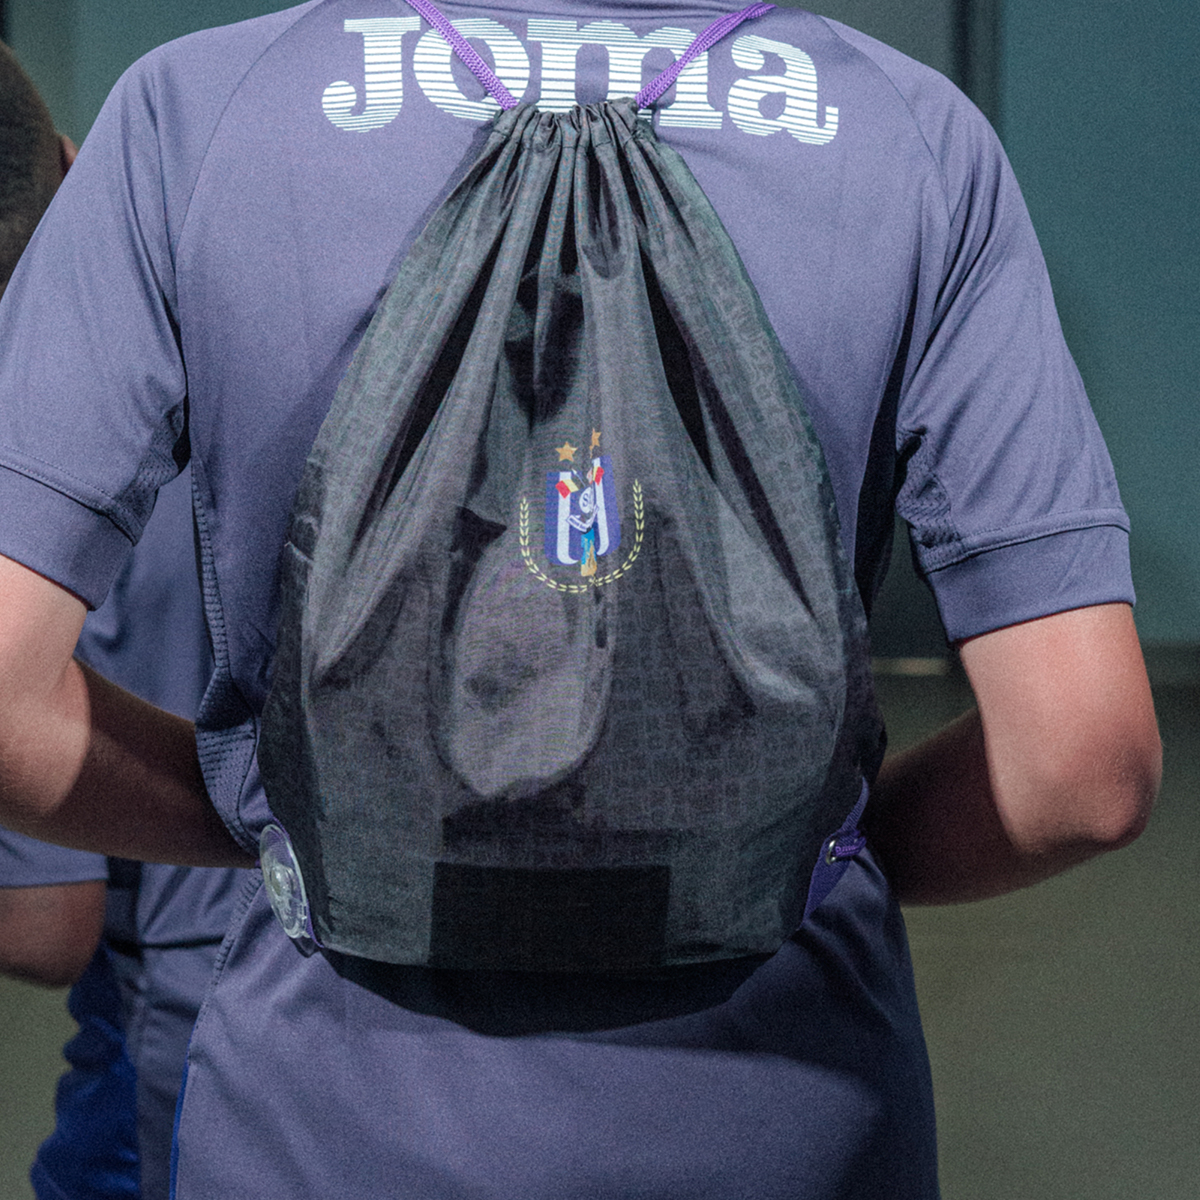 RSCA Gymbag/Swimbag - Black